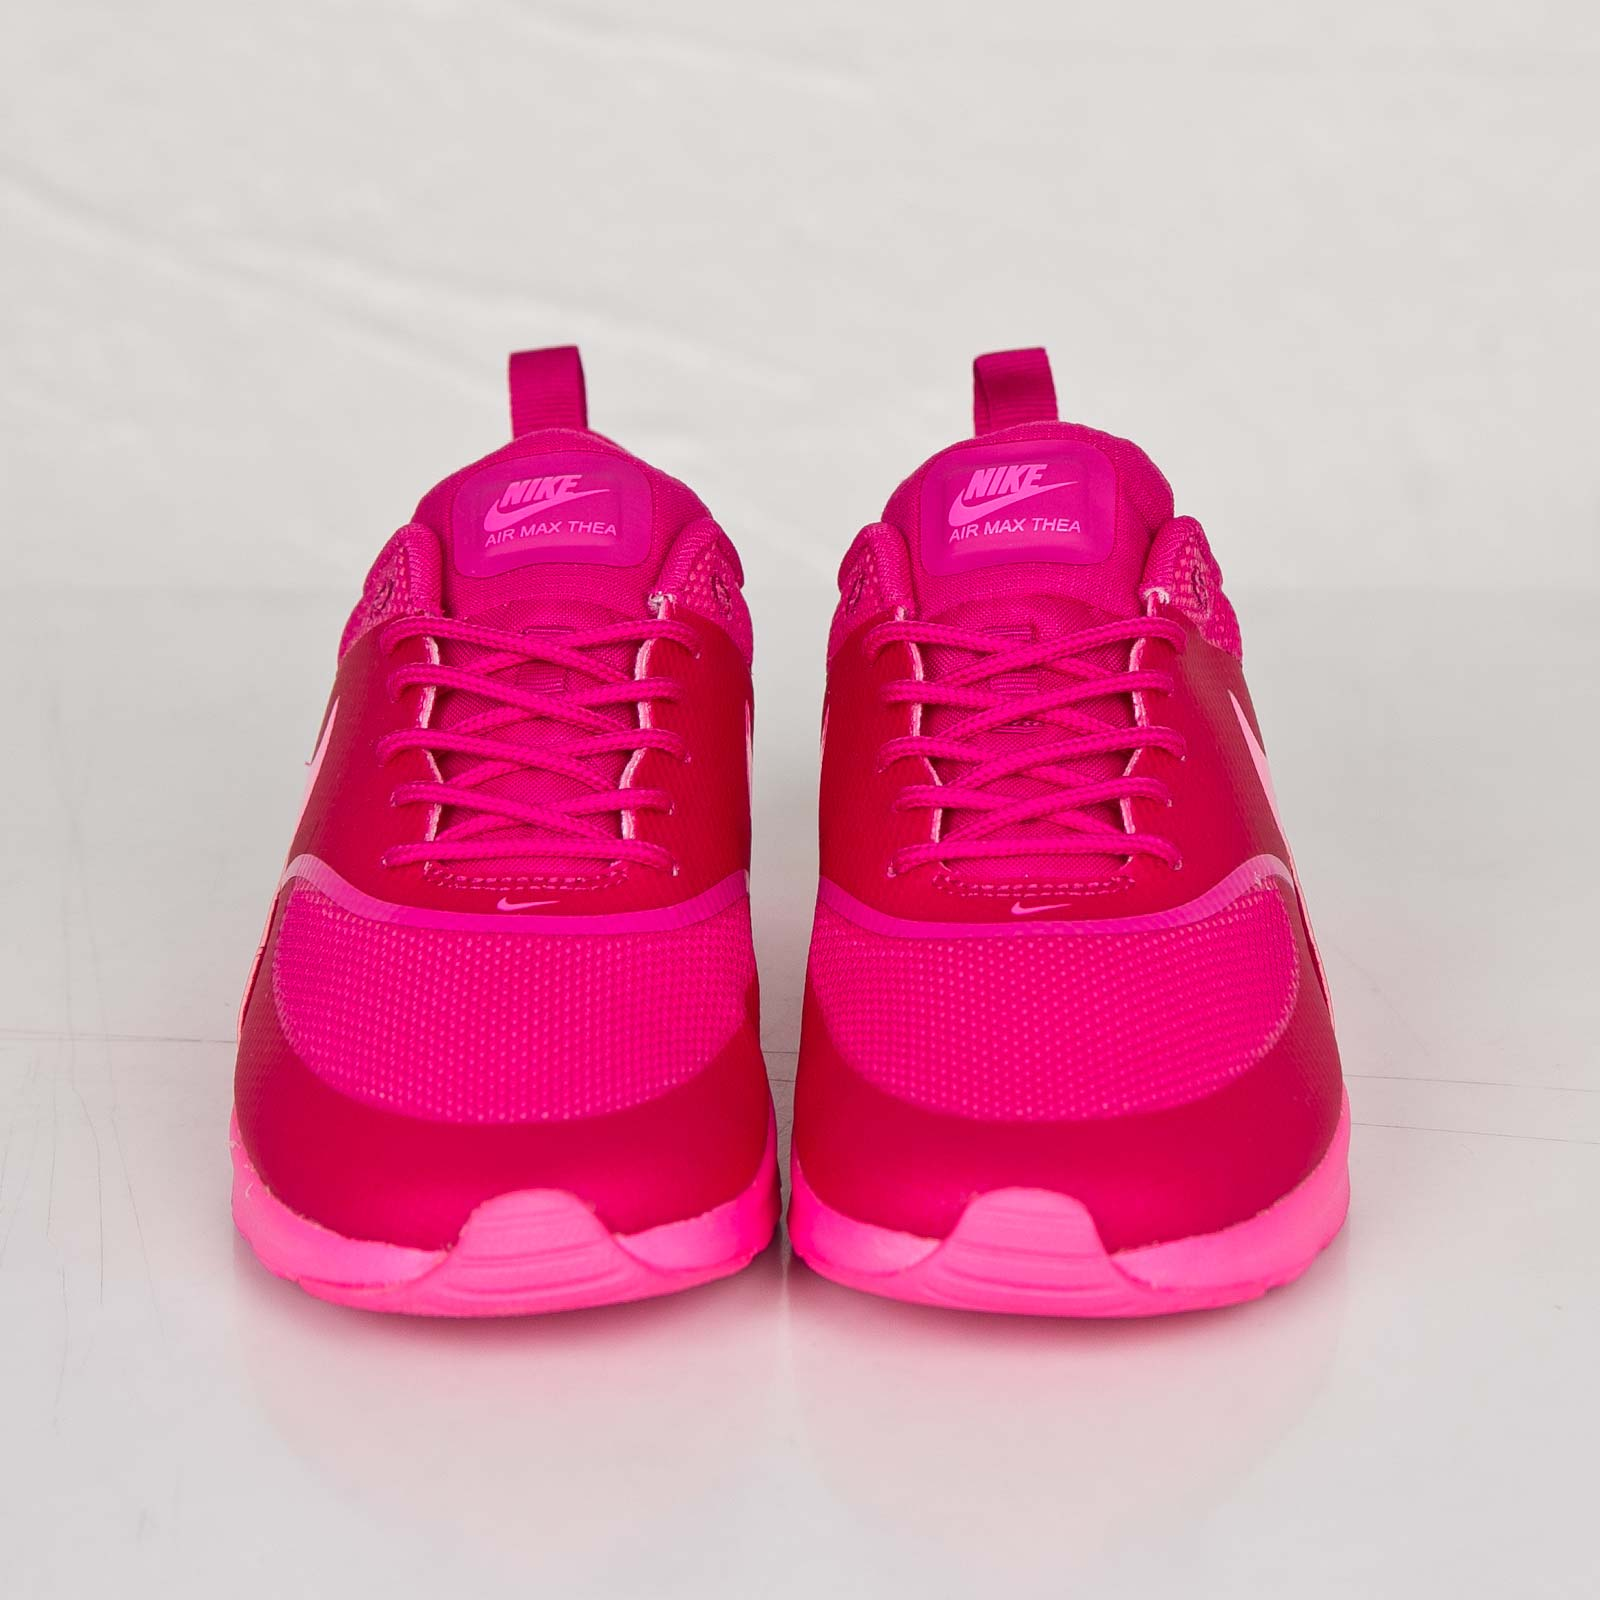 new style 9d324 d5986 Nike Wmns Air Max Thea - 599409-604 - Sneakersnstuff   sneakers    streetwear online since 1999